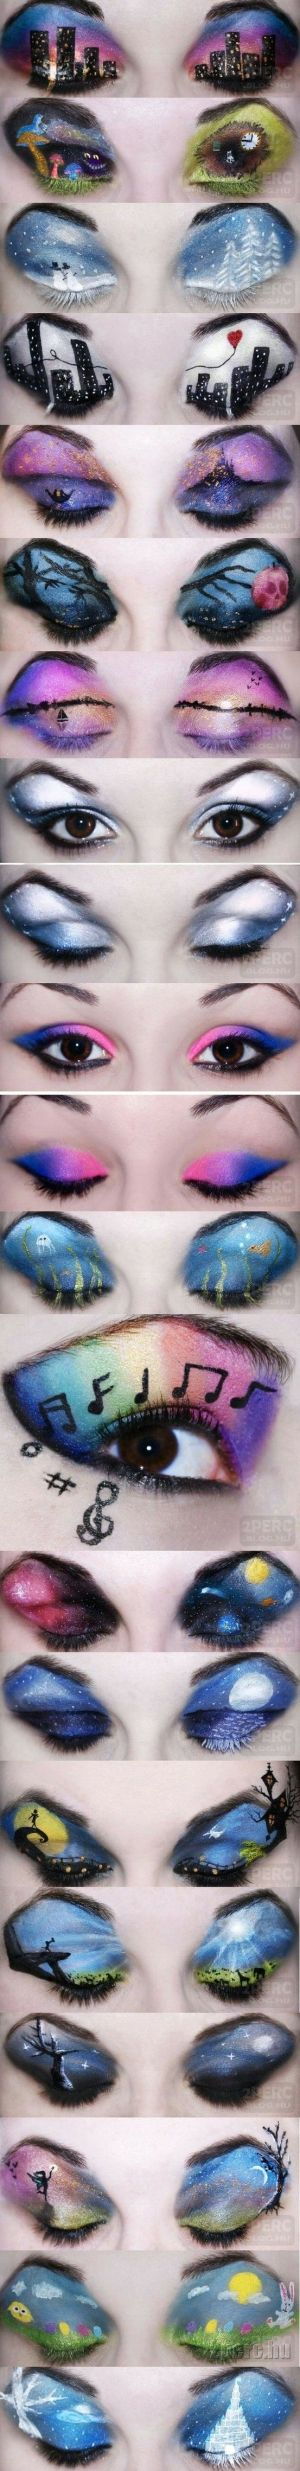 Awesome eye makeup!